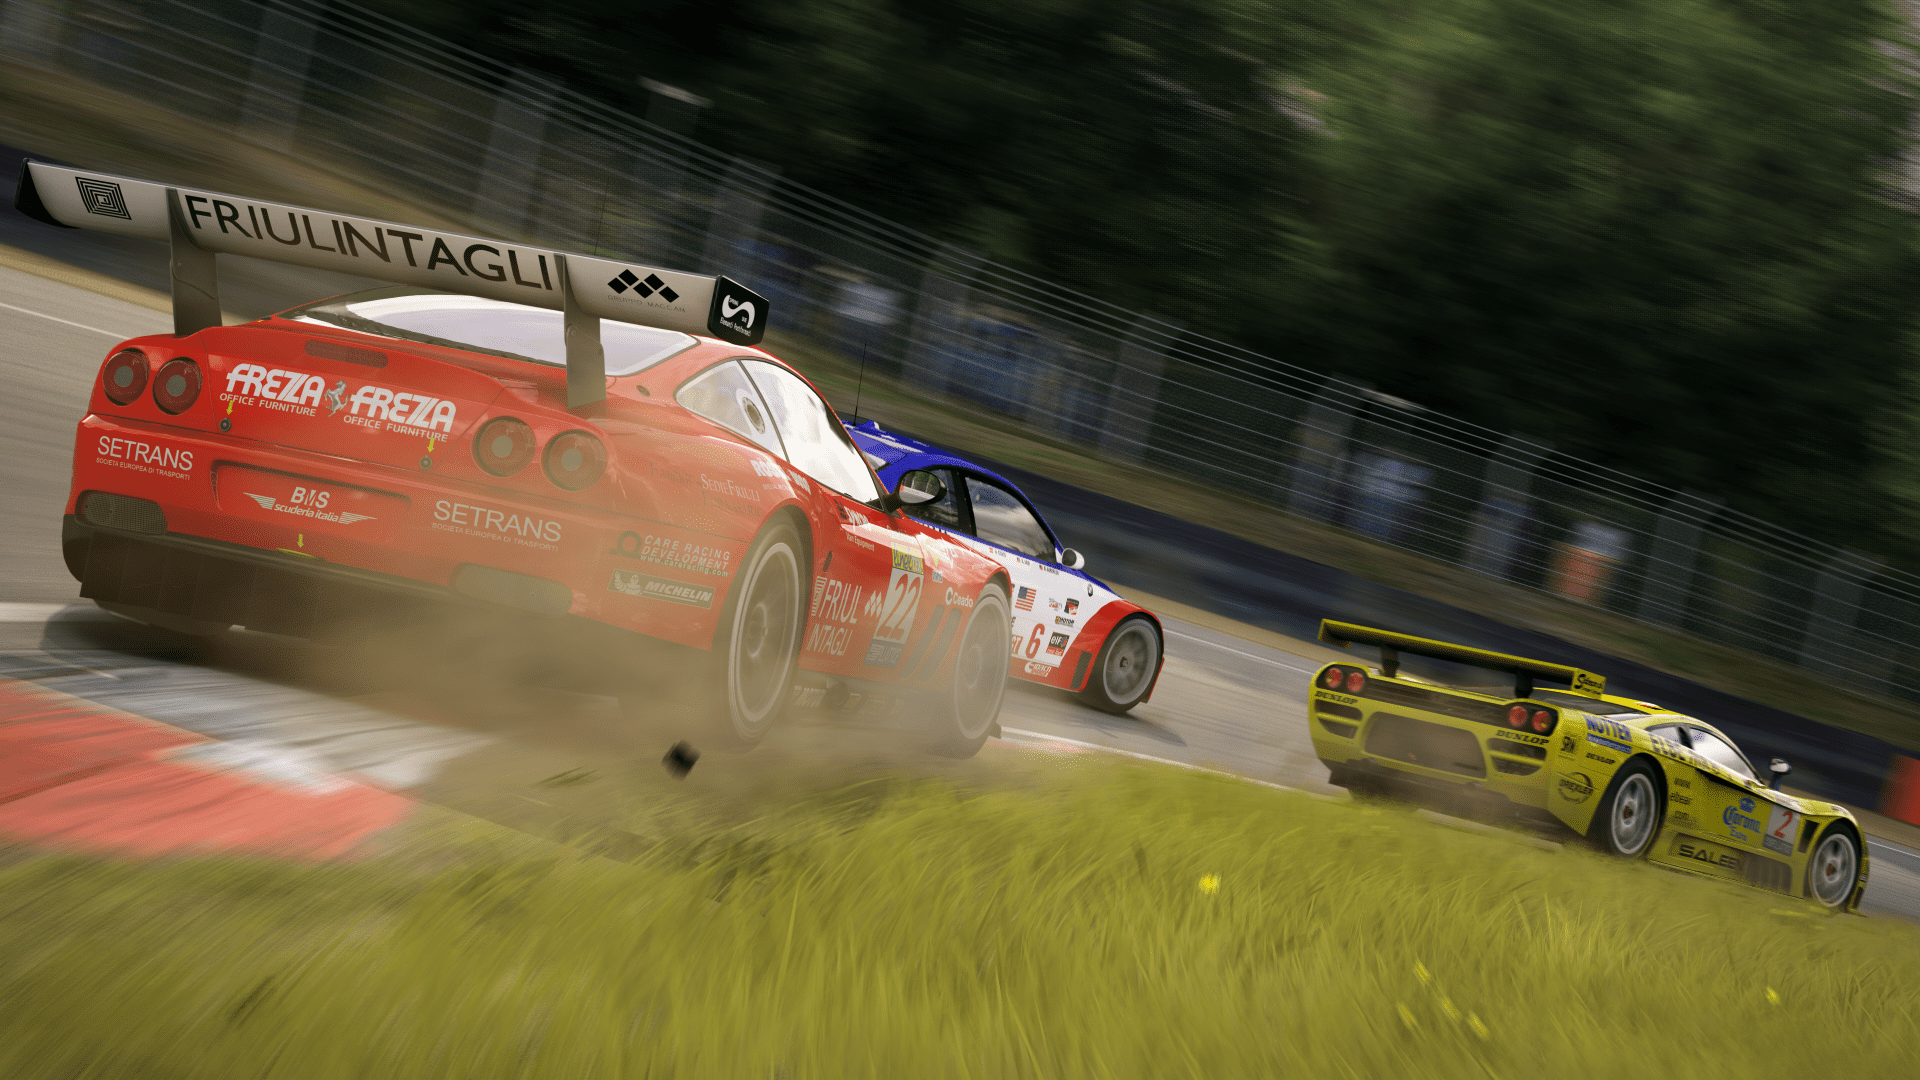 PC - Assetto Corsa PC Mods General Discussion | Page 981